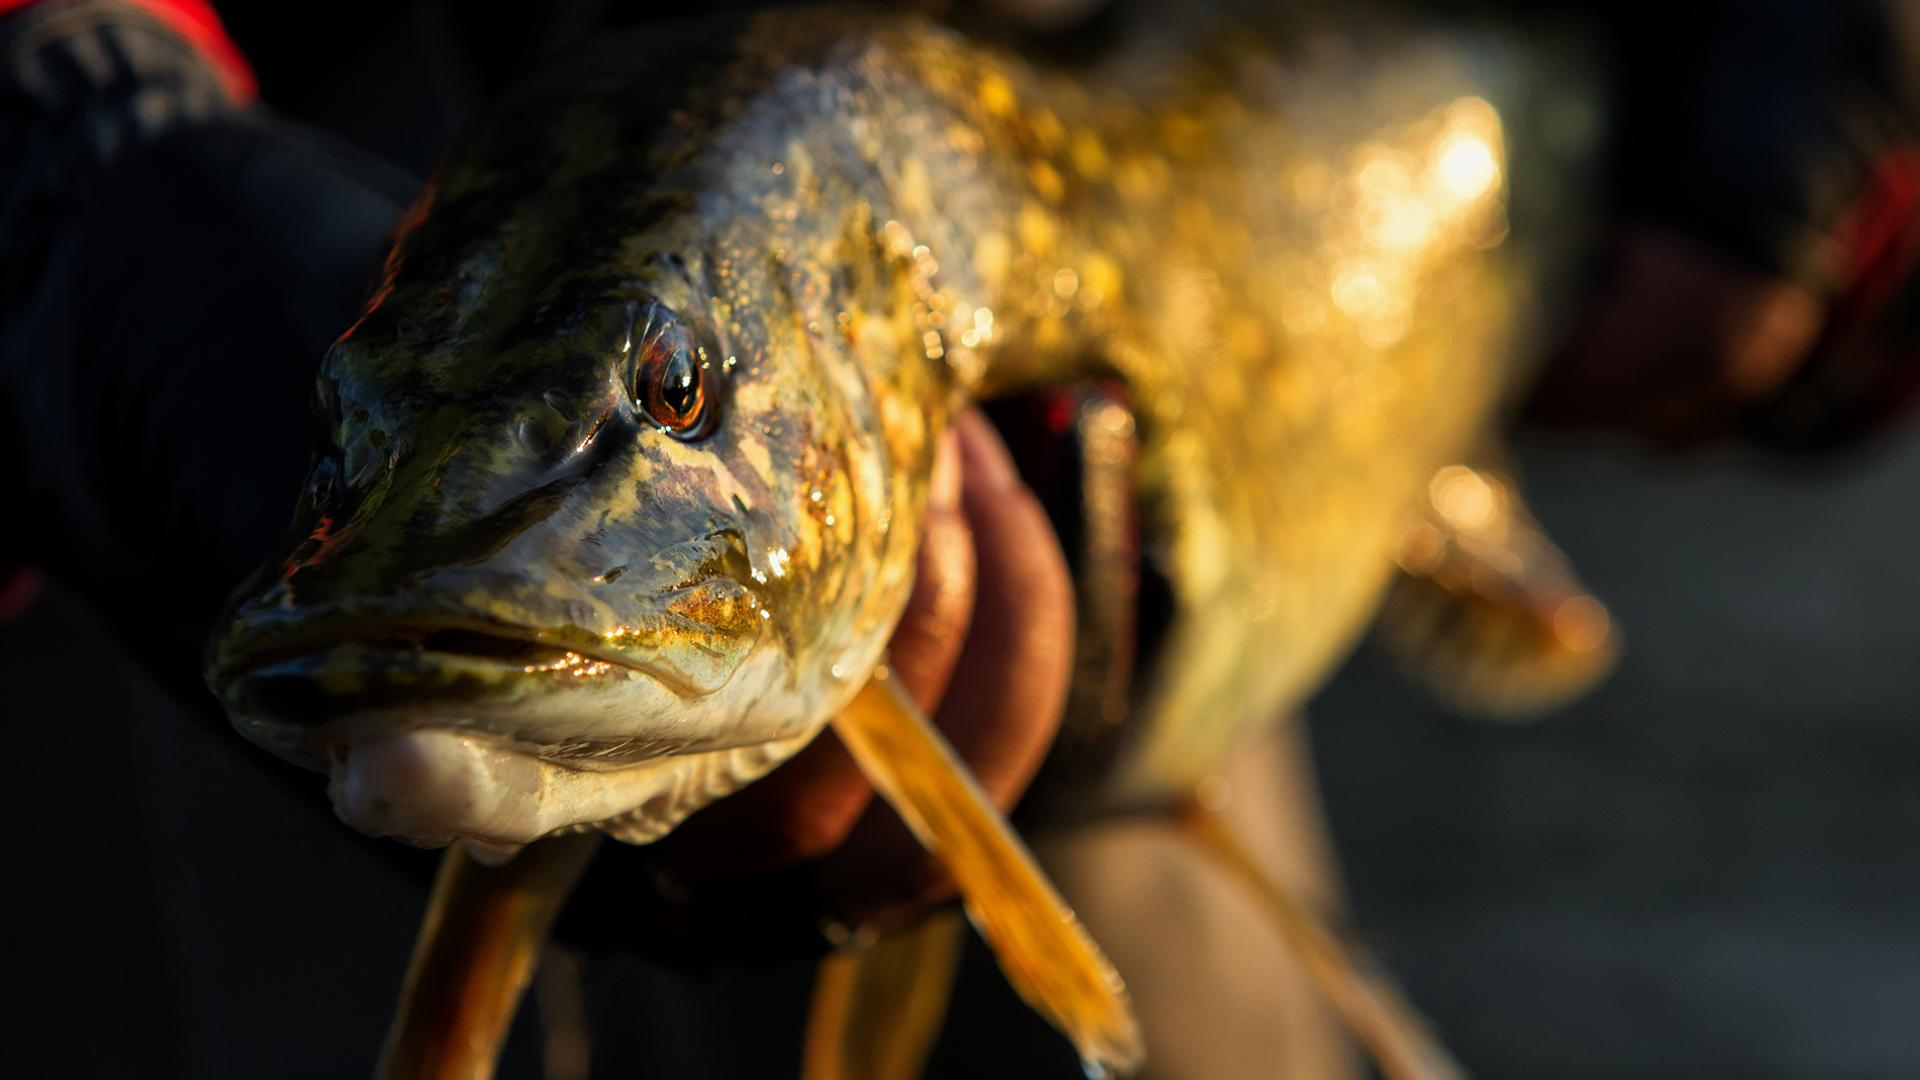 Man holds a giant Muski with golden late afternoon sunlight; closeup on the fish's face